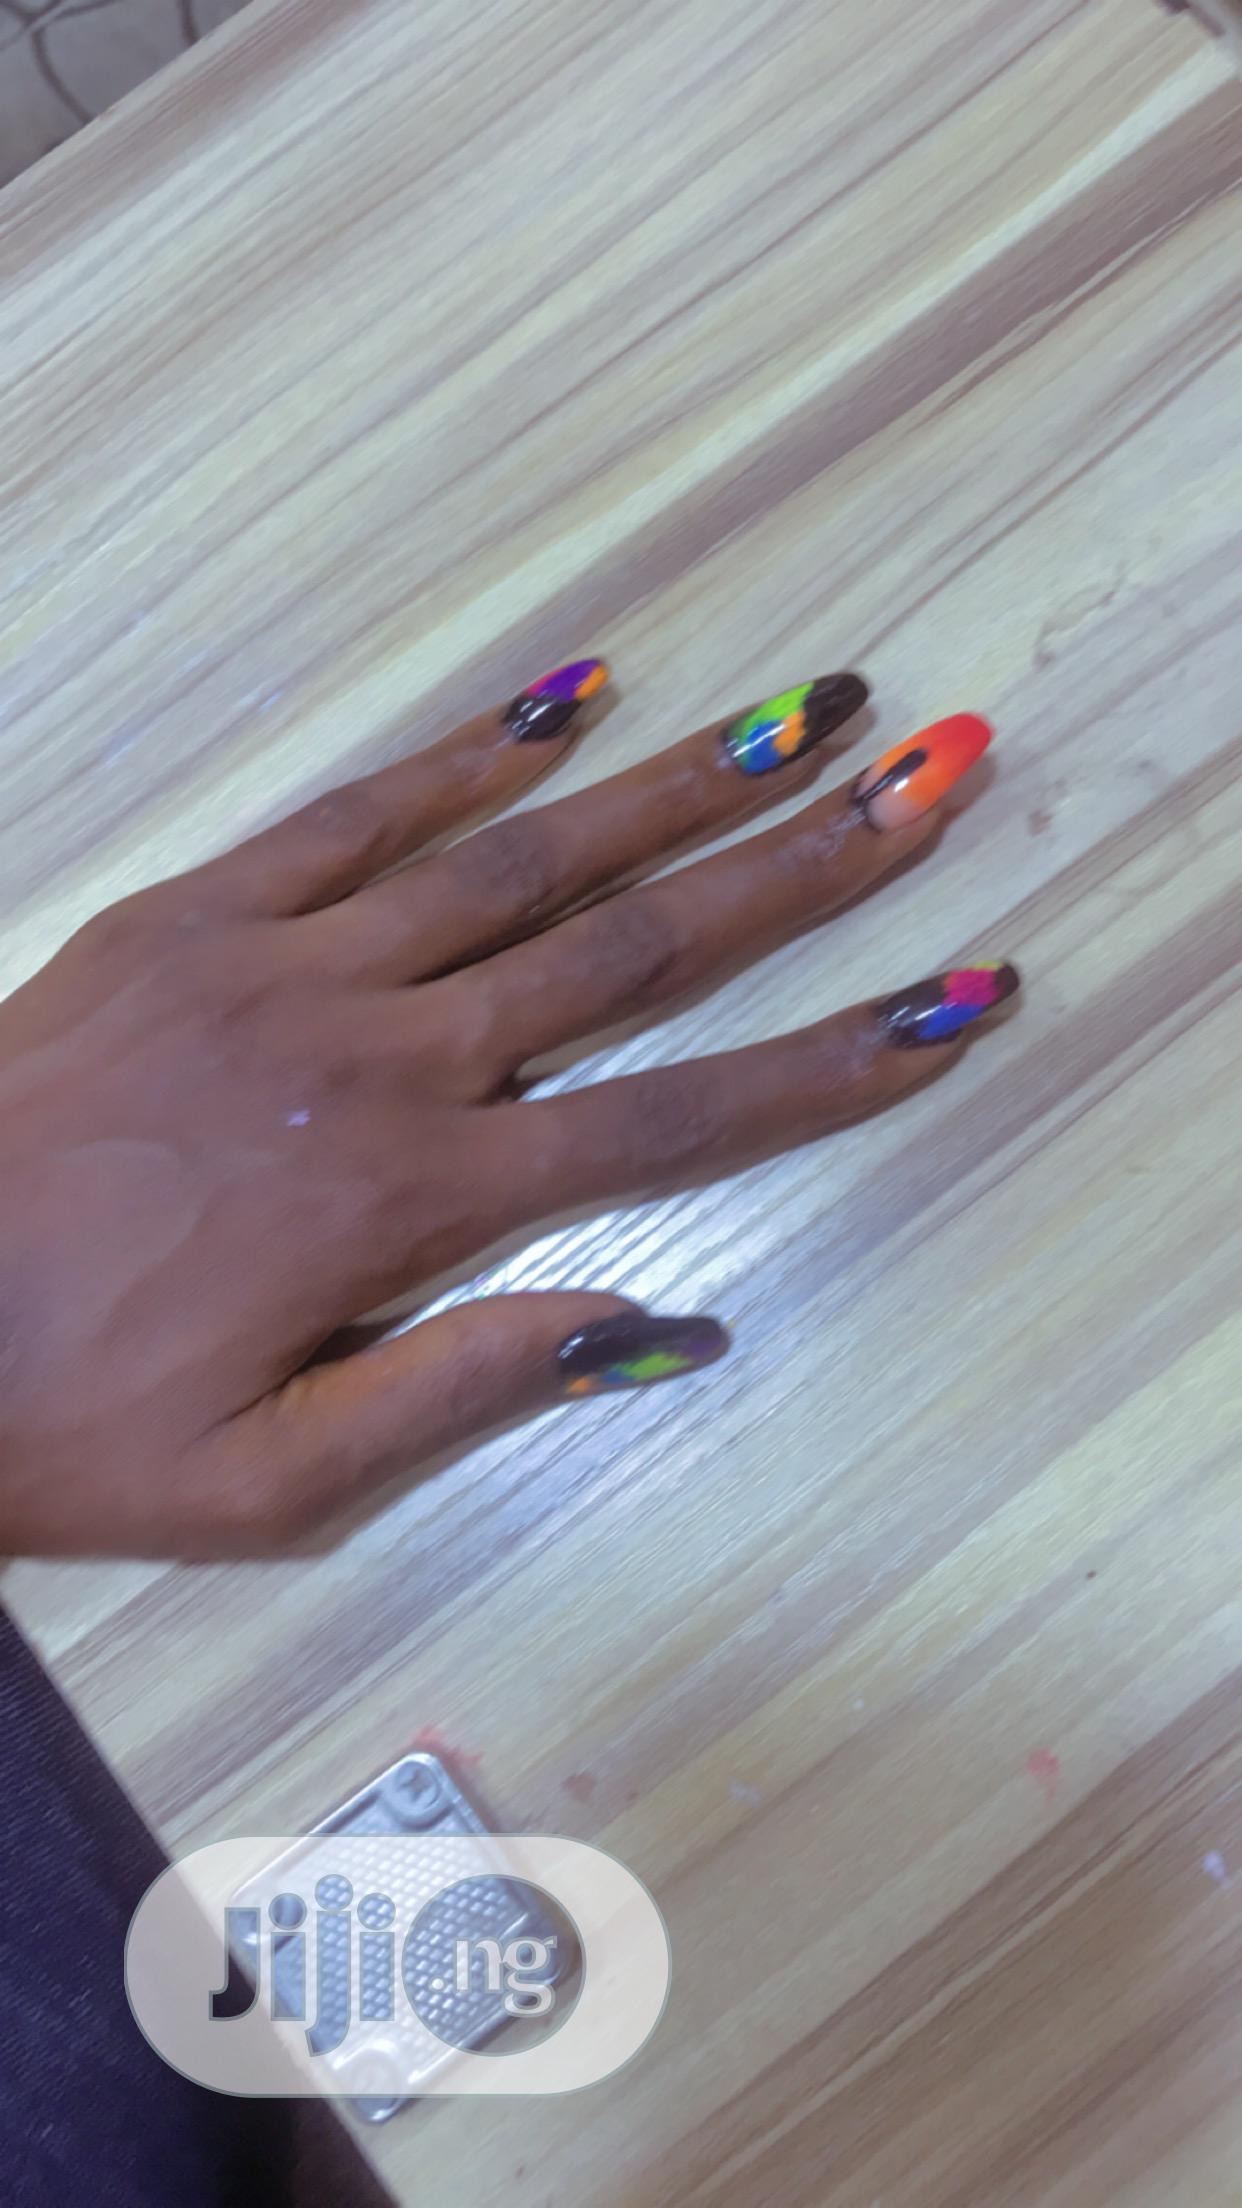 Nails And Pedicure/Manicure | Health & Beauty Services for sale in Port-Harcourt, Rivers State, Nigeria